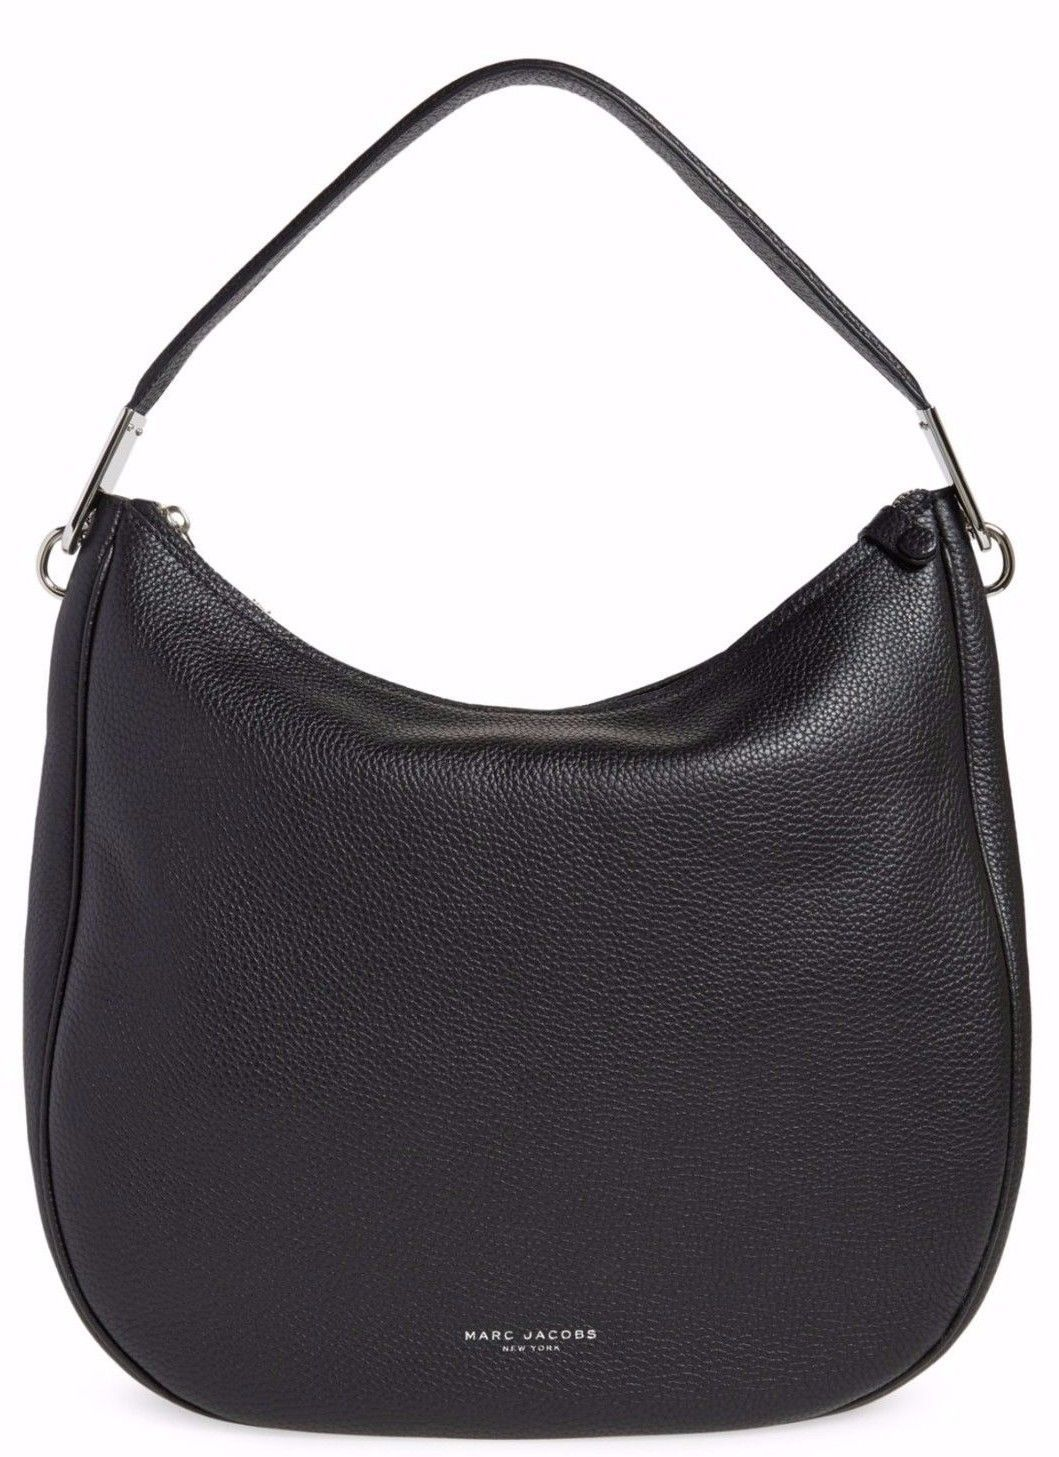 Primary image for NWT Marc Jacobs Pike Place Black Leather Hobo Shoulder Bag Purse $428 New